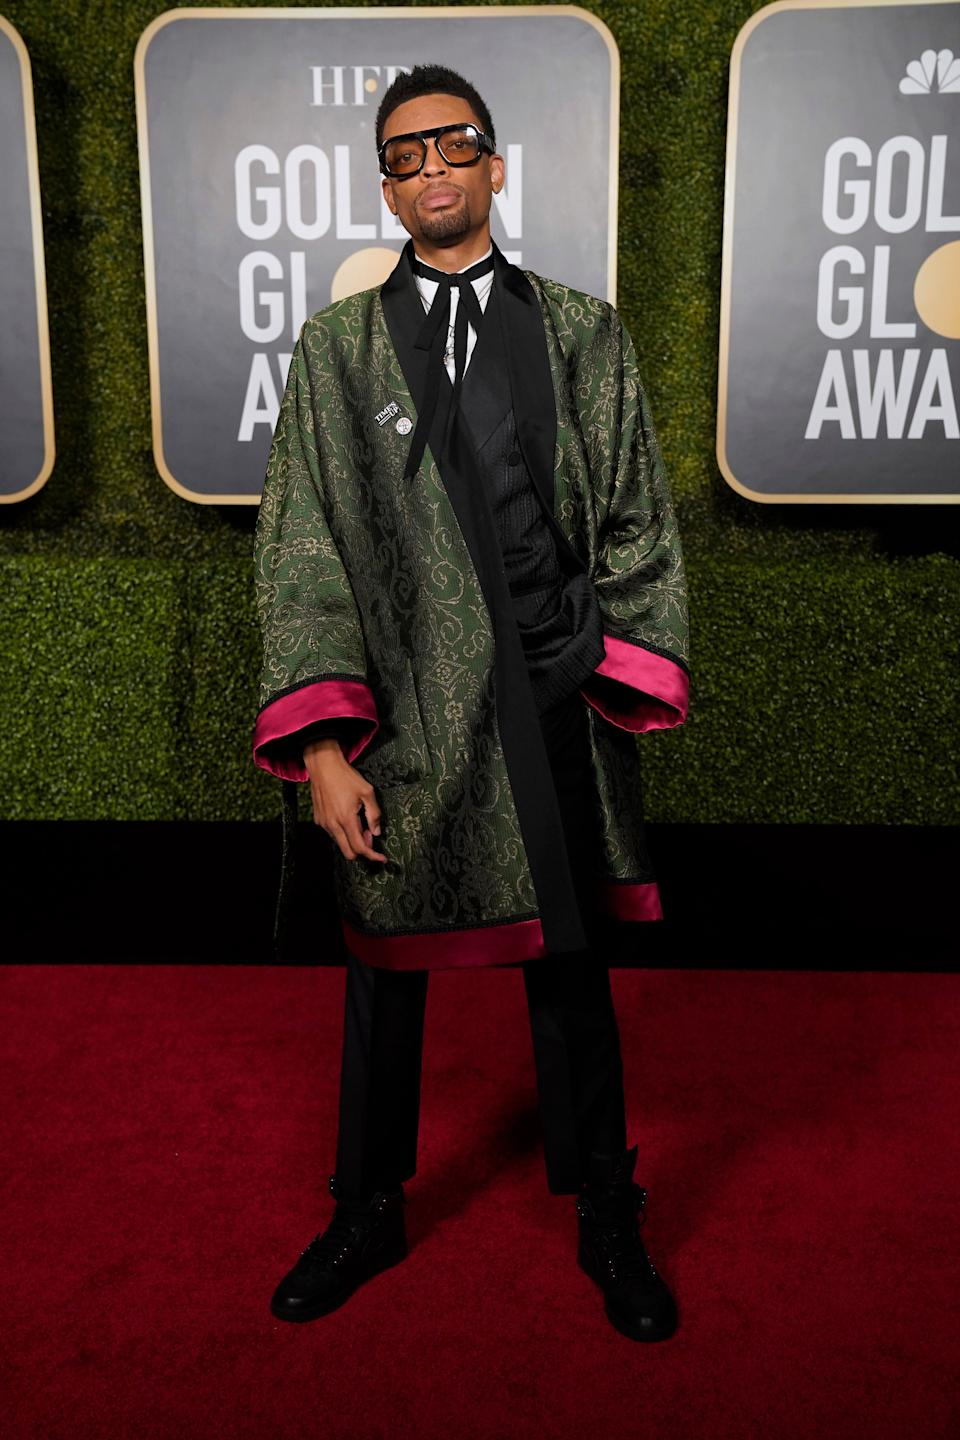 Jackson Lee attends the 78th Annual Golden Globe Awards held at The Rainbow Room in New York, New York. (Photo: Peter Kramer/NBC via Getty Images)